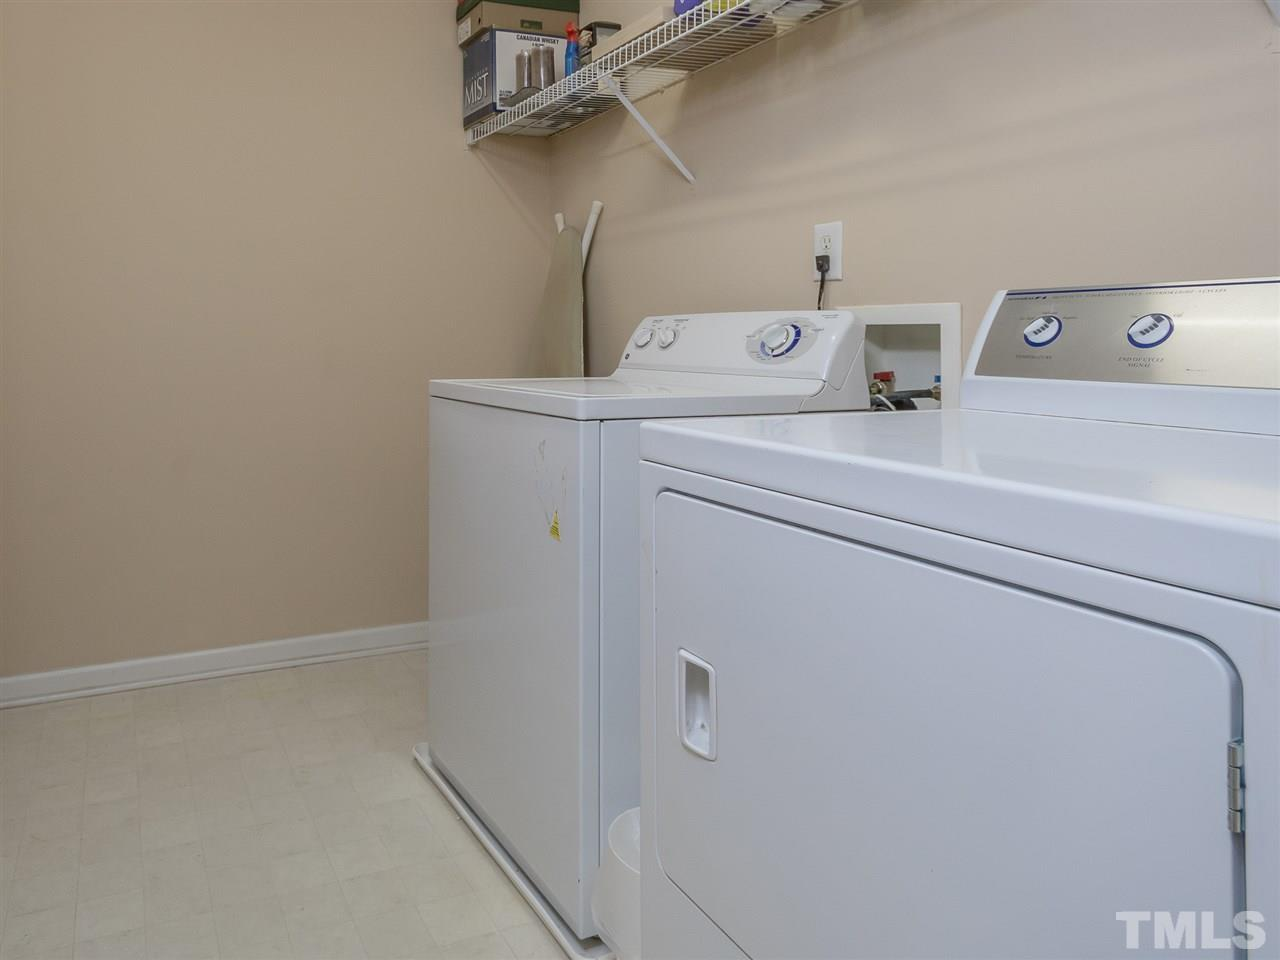 Wait until you see the size of this laundry room! It's huge! And it has a closet as well!